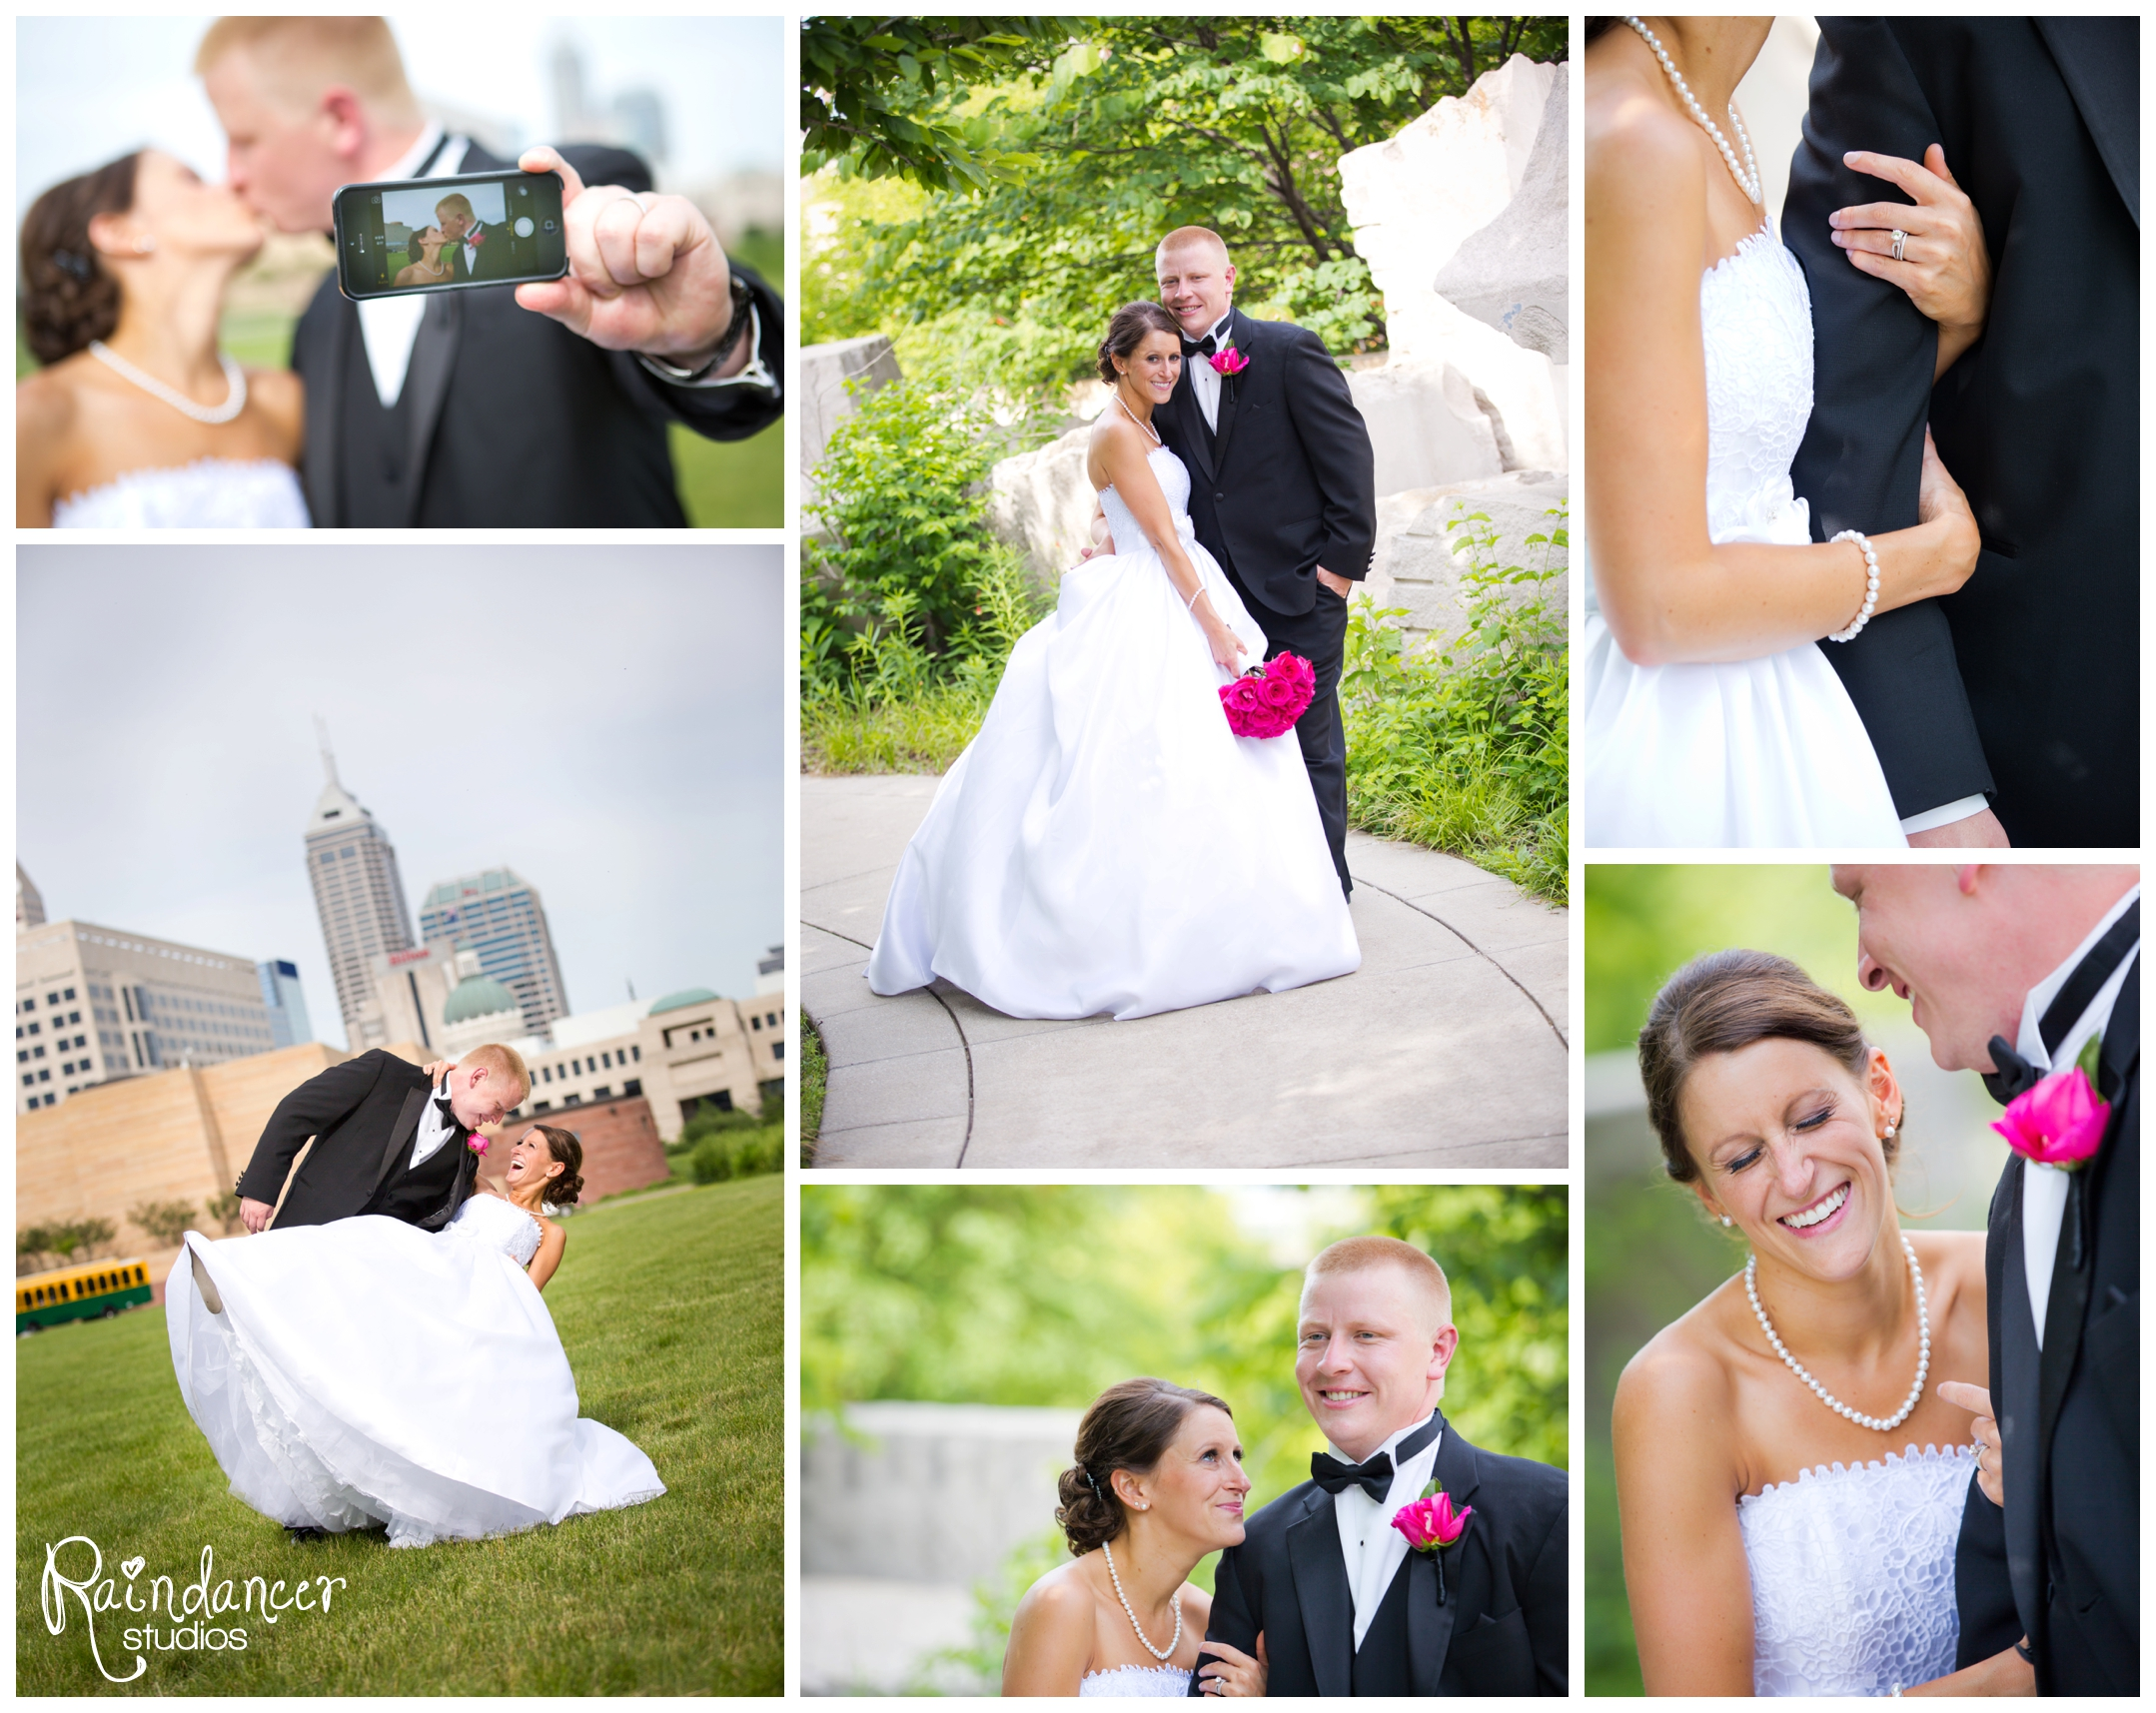 Jon + Lisa  {Indianapolis Wedding Photographer}